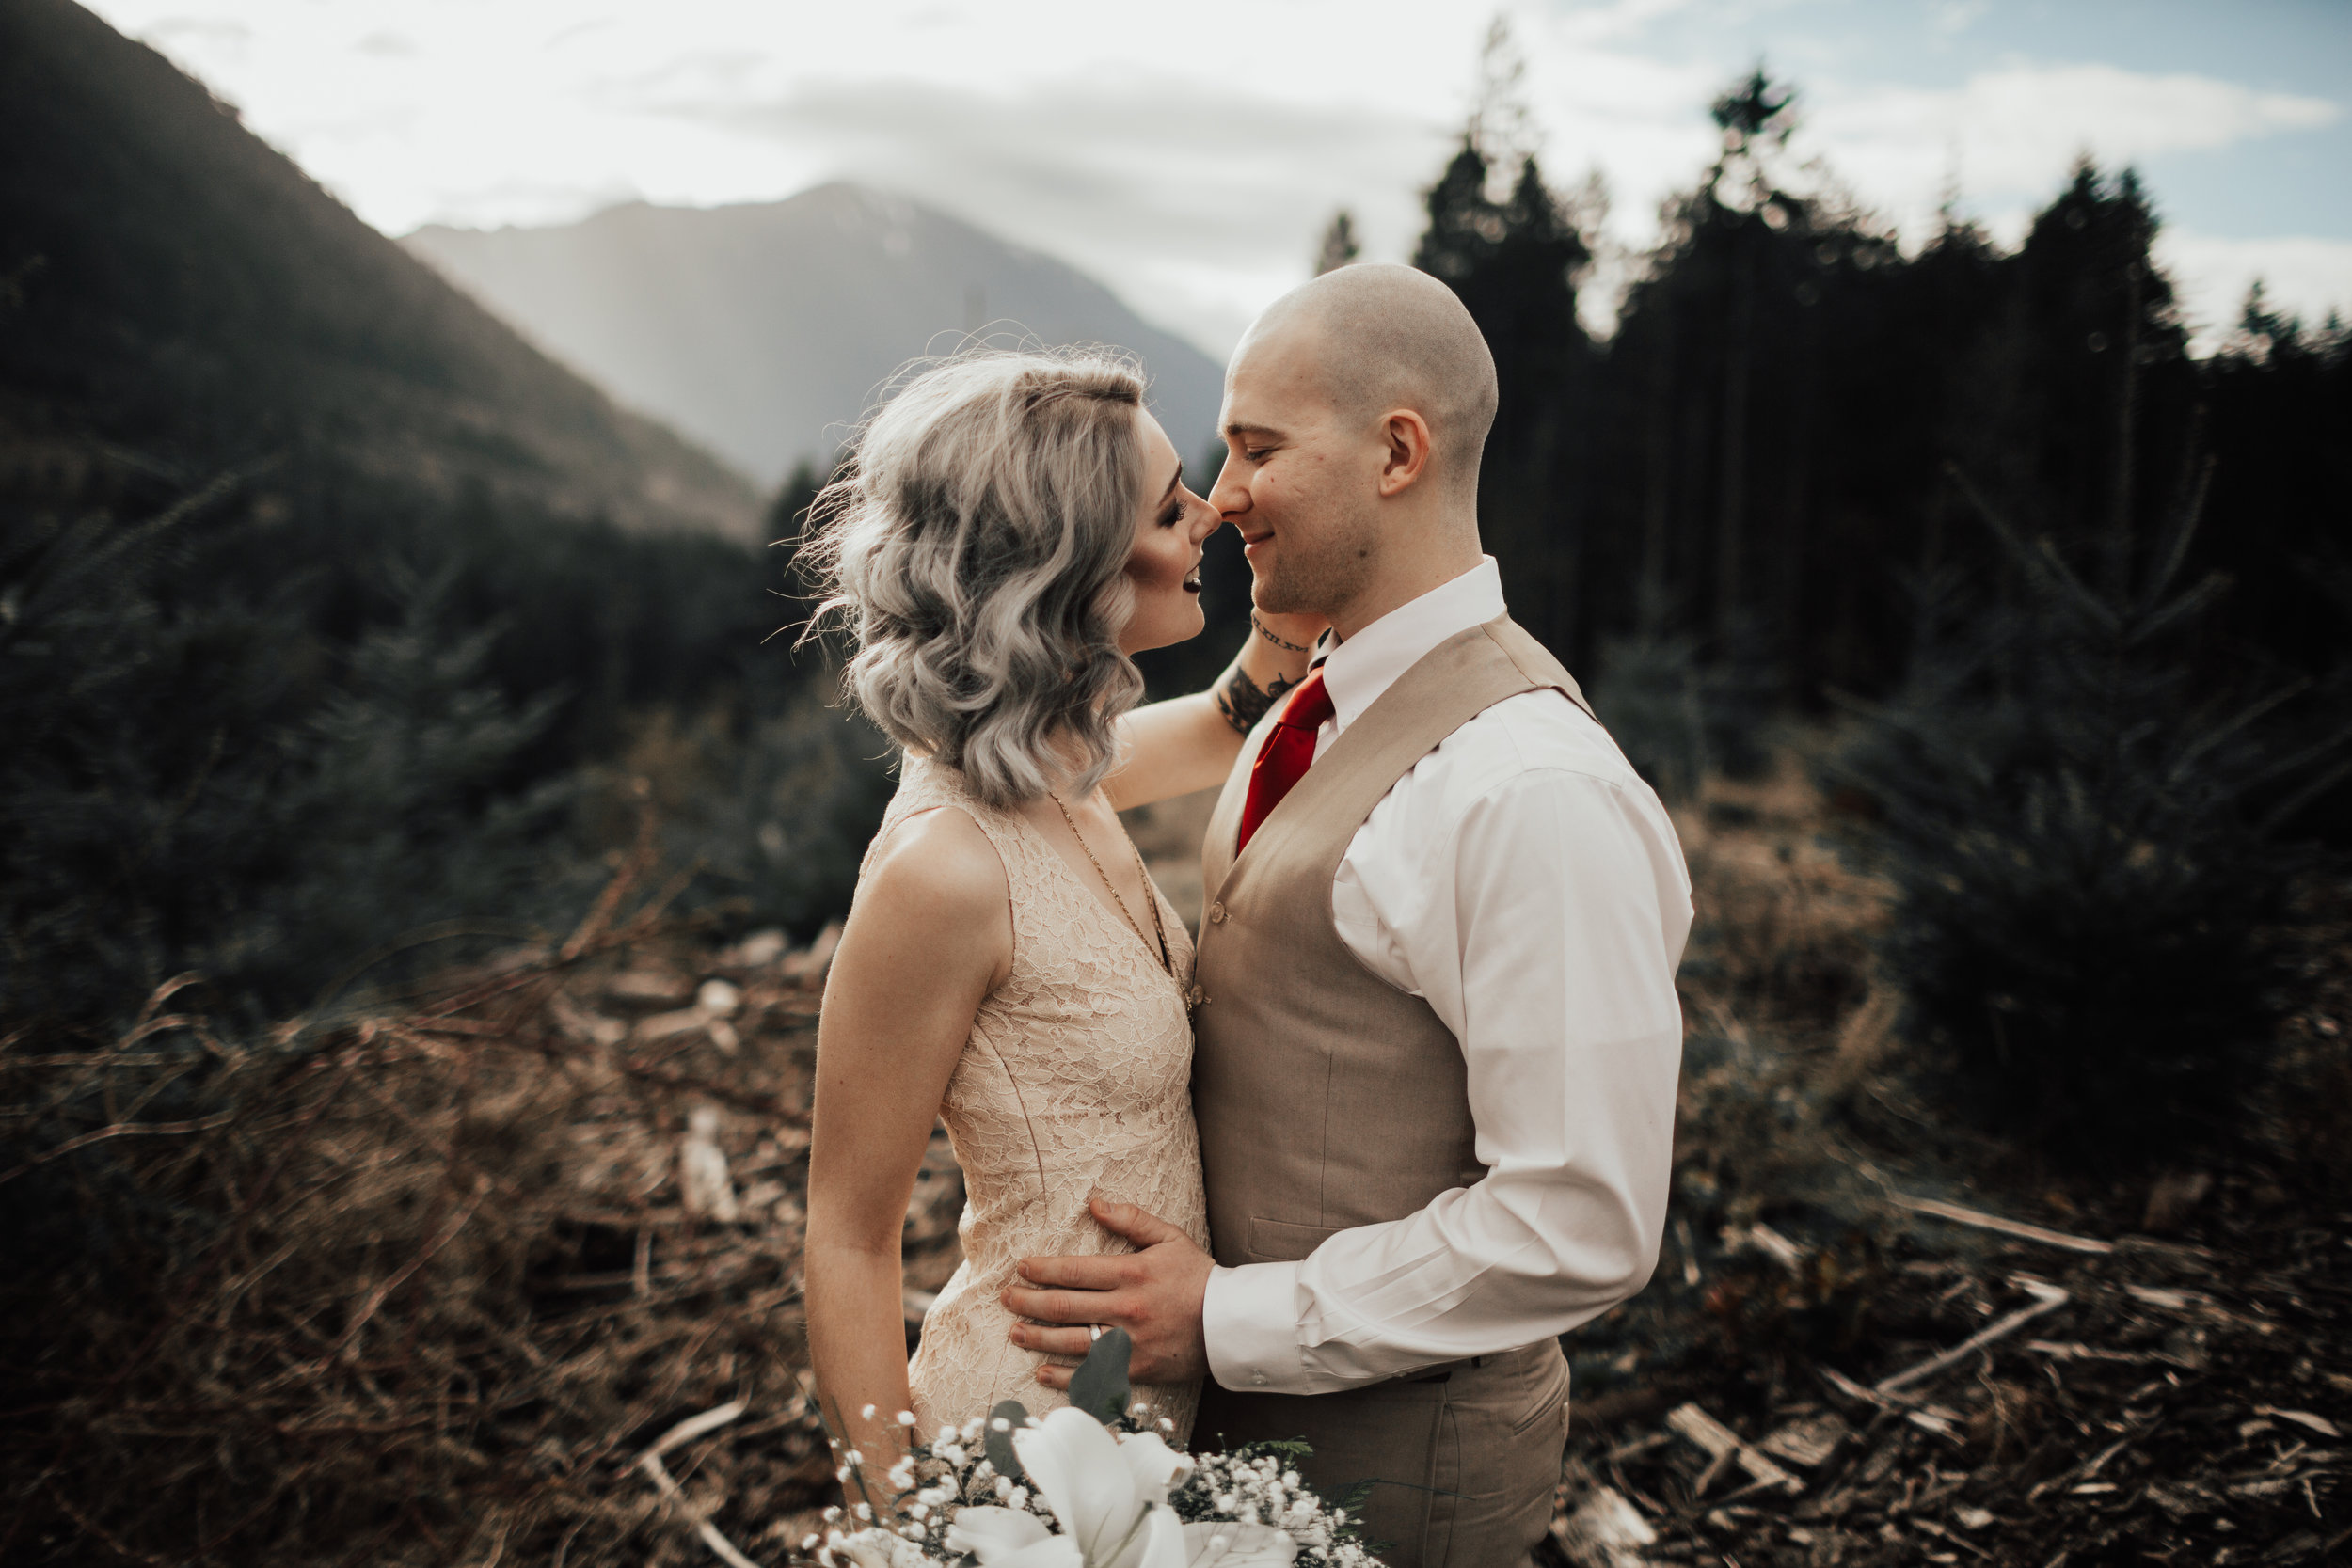 Port+Angeles-PNW-Sequim-Portrait-wedding-elopement-photographer-kayladawnphoto-kayla+dawn+photography-olympic+peninsula-portraiture6.jpg